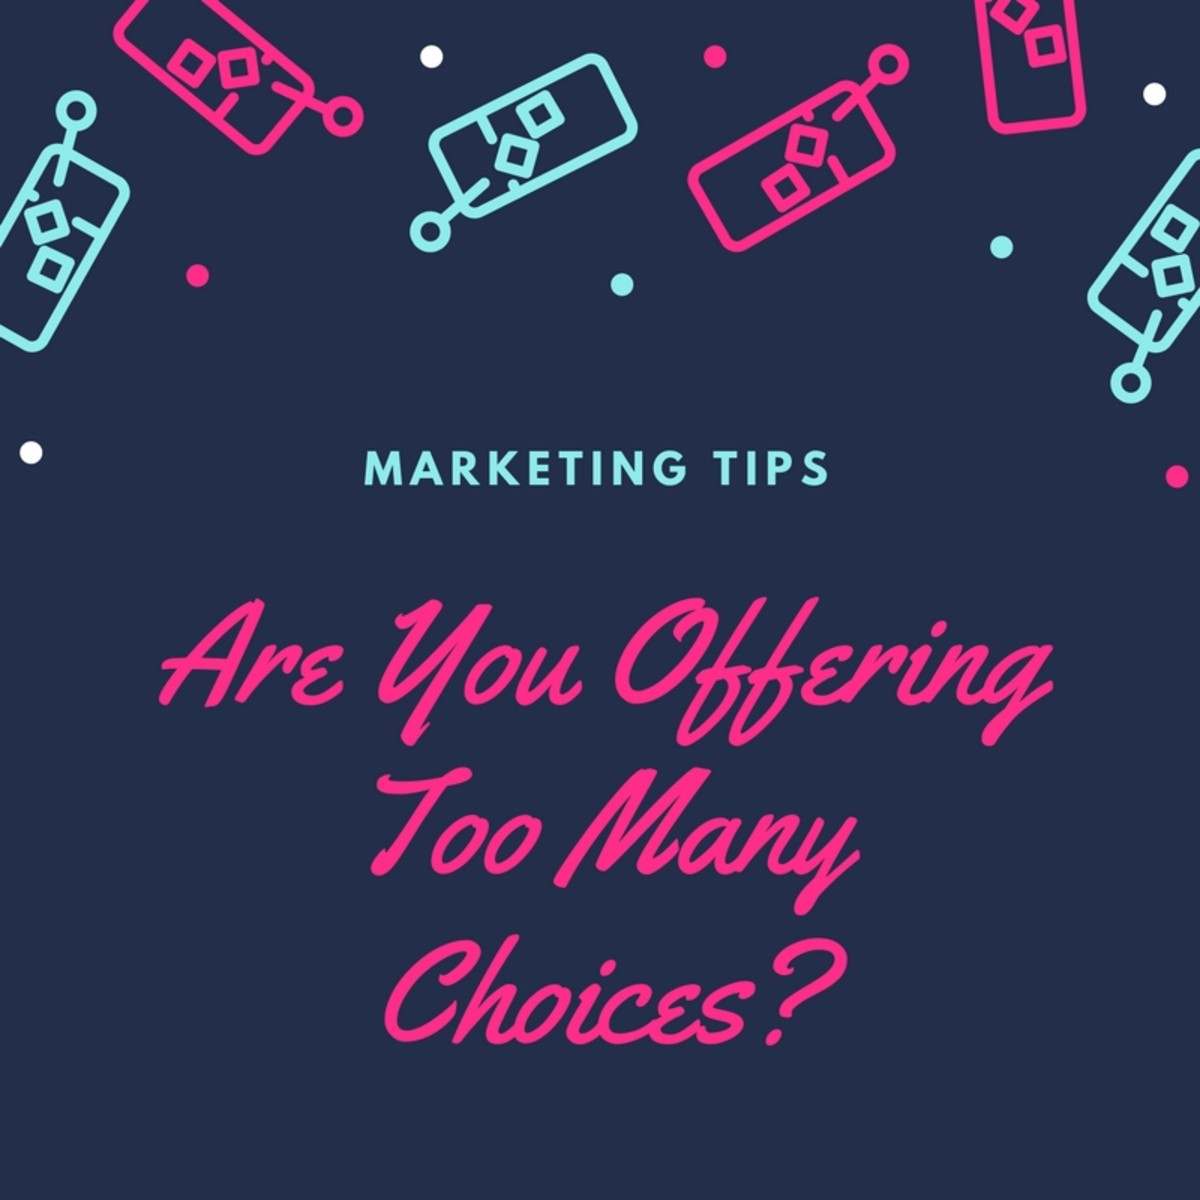 Marketing Tips: Are You Offering Too Many Choices?